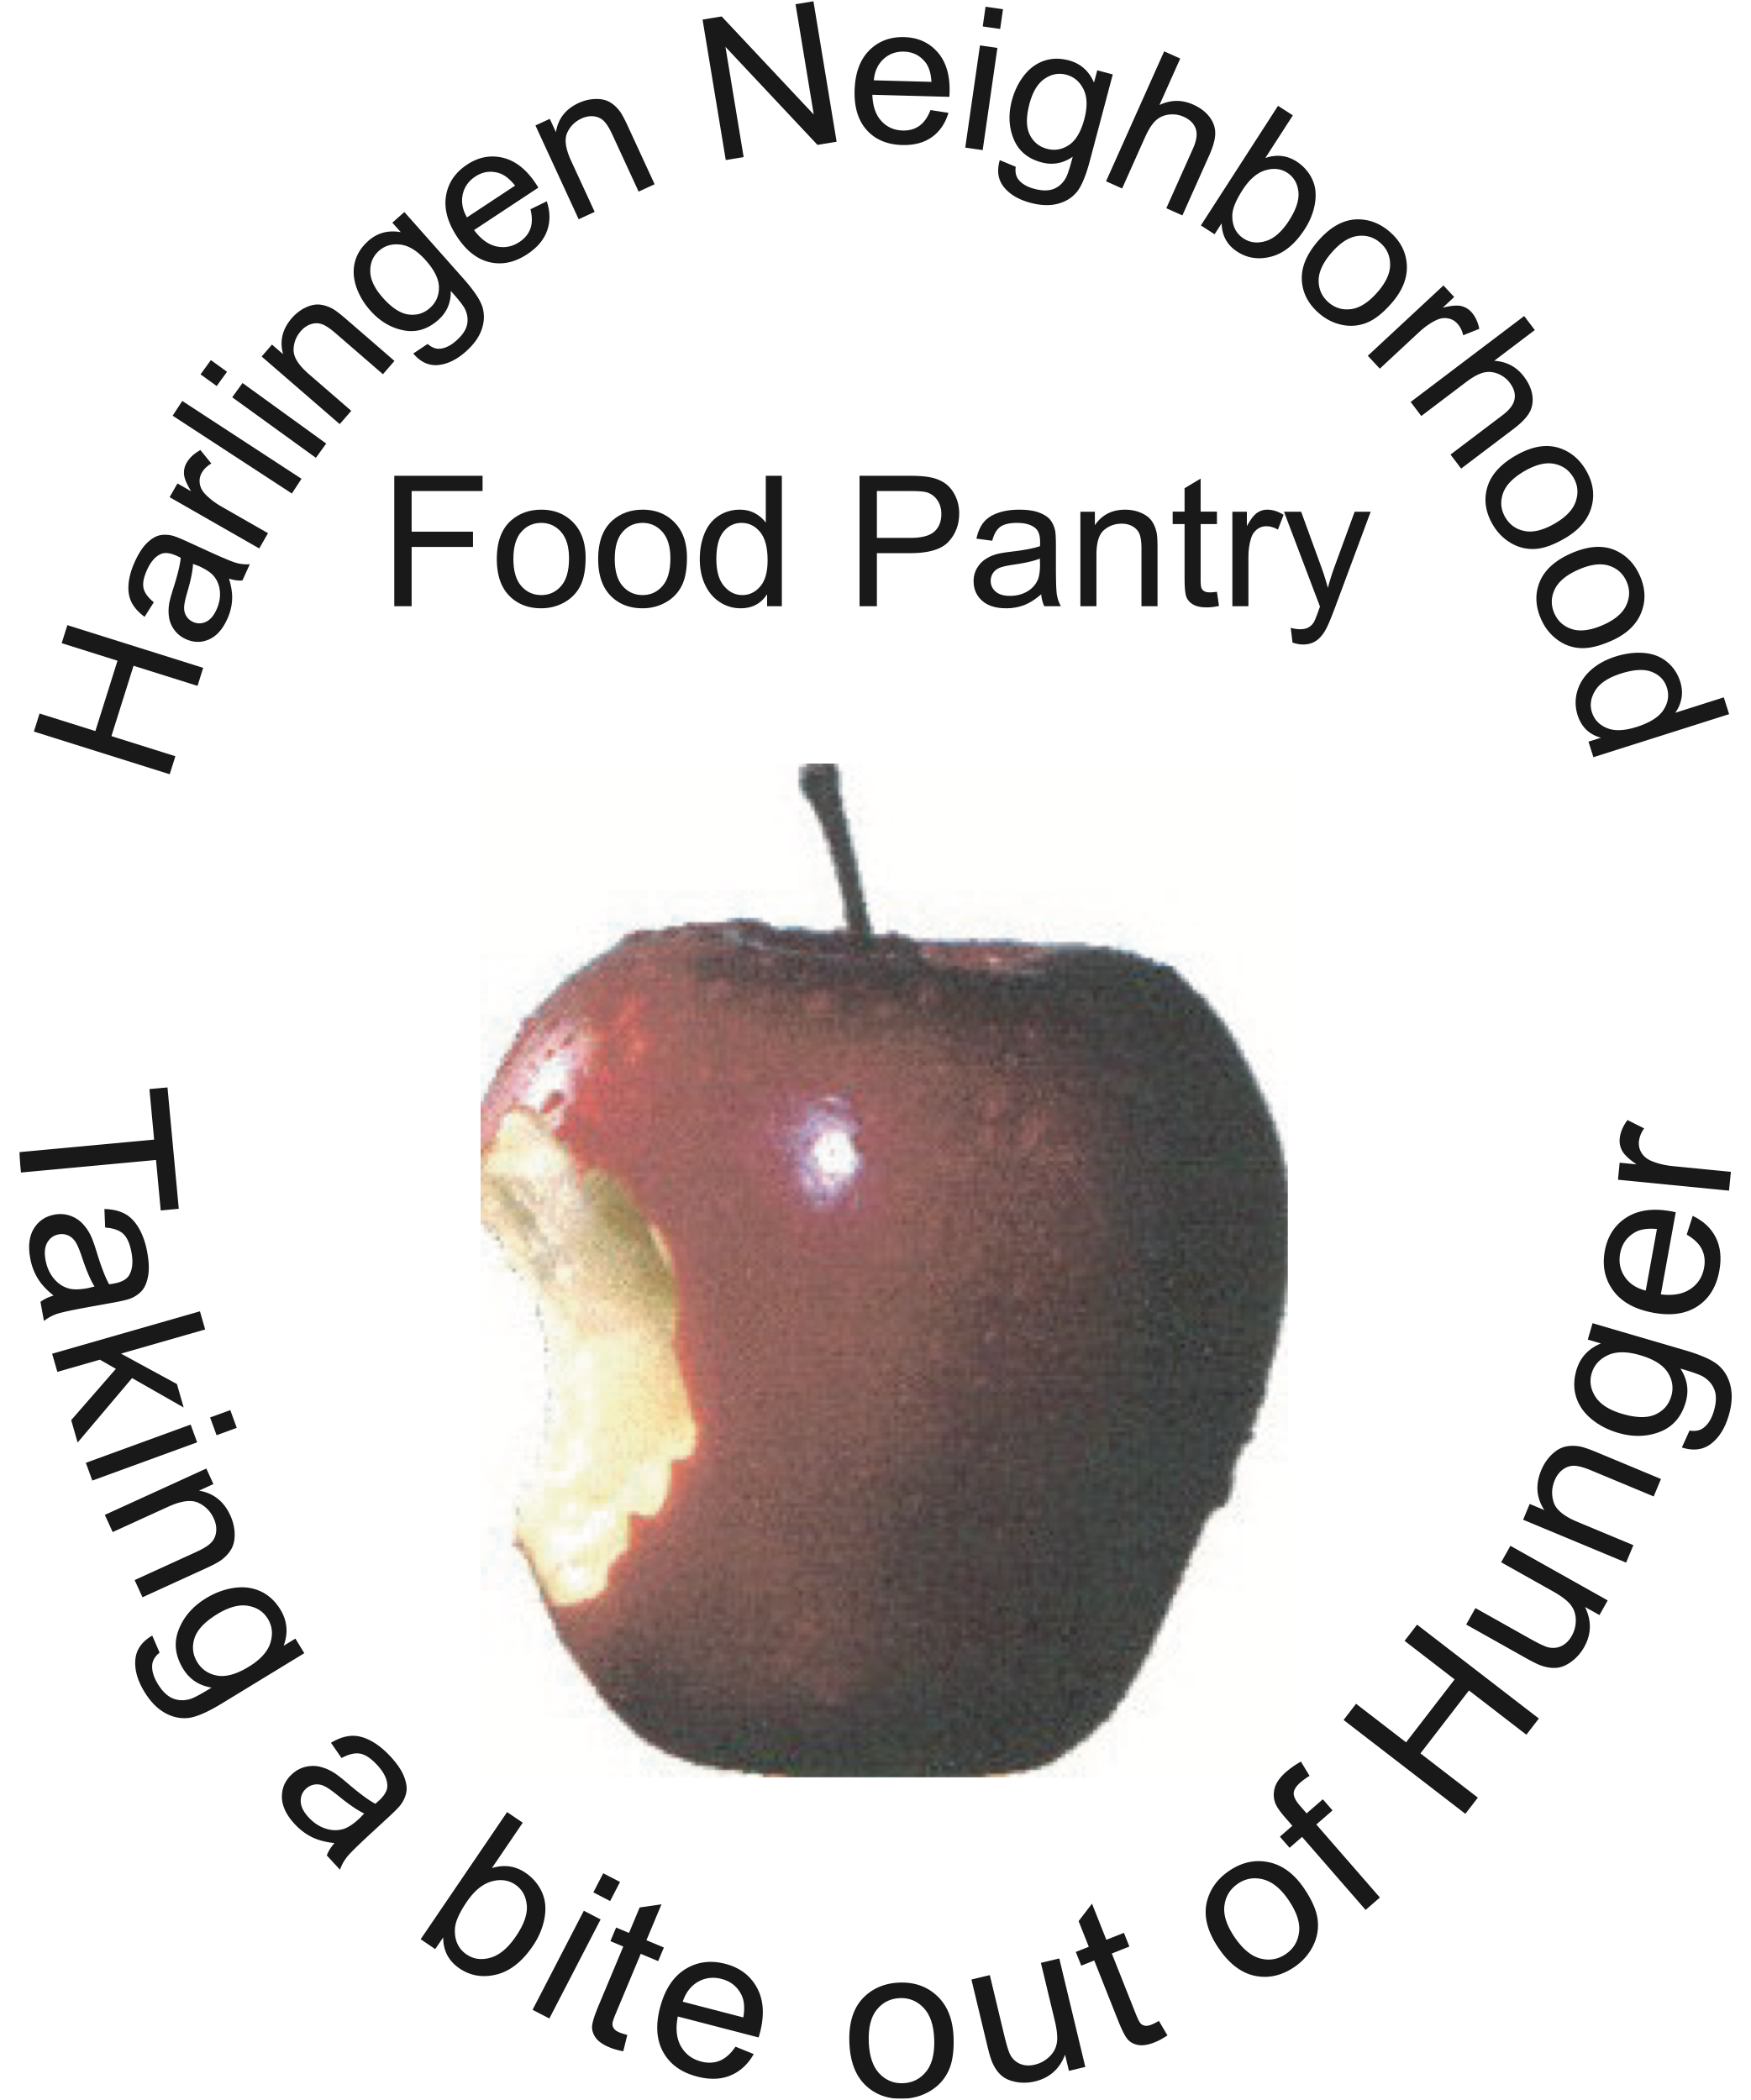 foodpantry.png